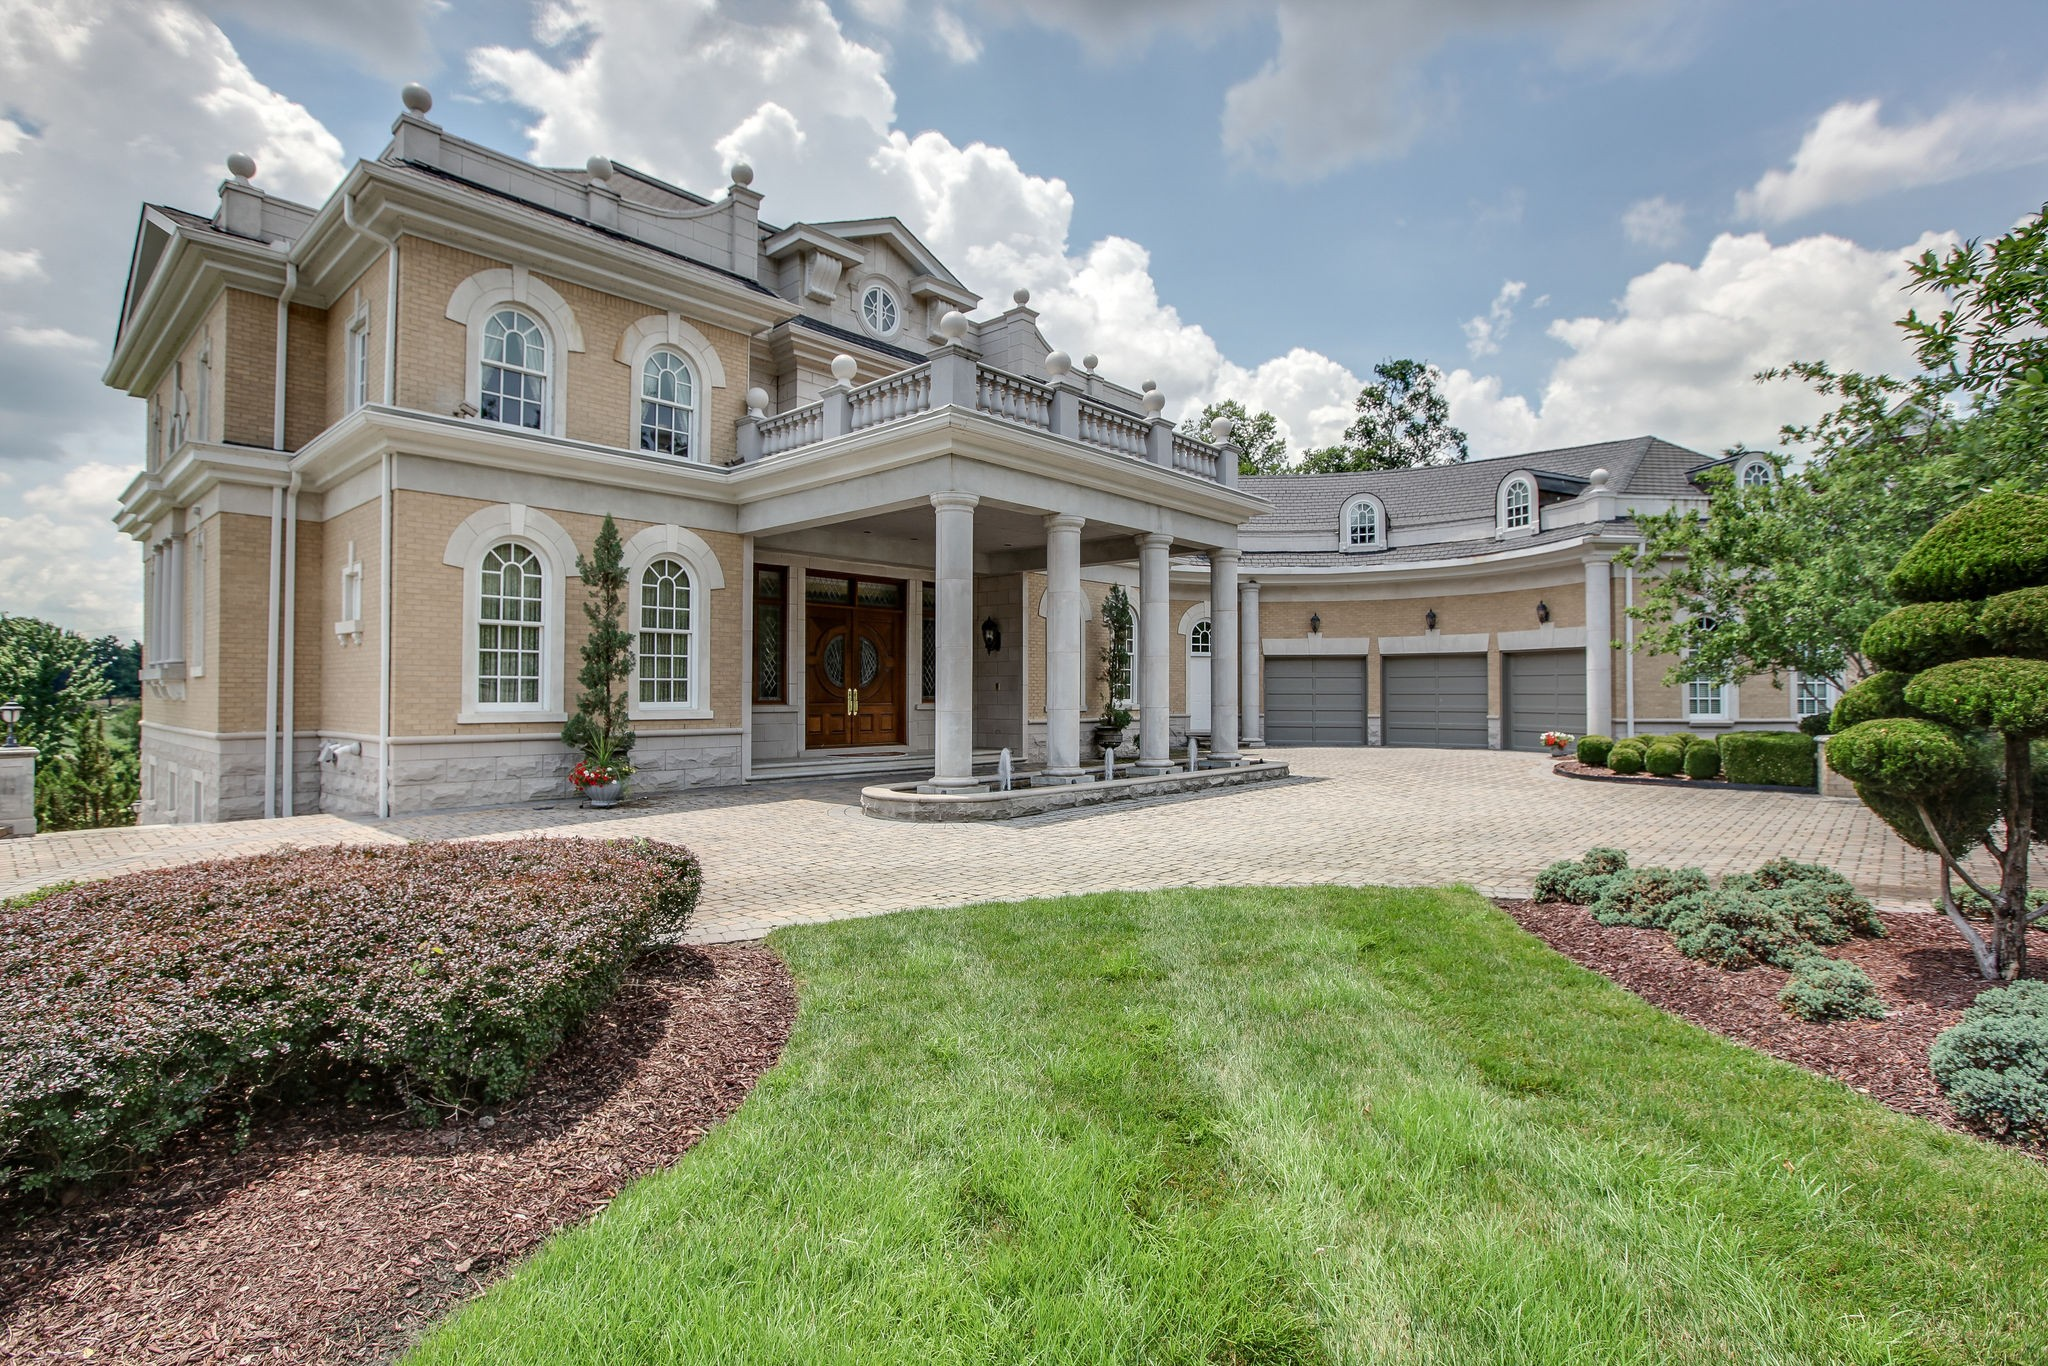 The Governors Club most iconic residence is now available for new ownership * The visual presence of this beautiful home is extraordinarily majestic both day and evening * Beautiful views of both the Governors Club golf course as well as the Brentwood hills unfold from every terrace and window of the residence * Once inside its' interior includes room after room of exquisite design and construction detail * Inclusive of new 127K Slateline shingle roof  * An architectural masterpiece to behold *